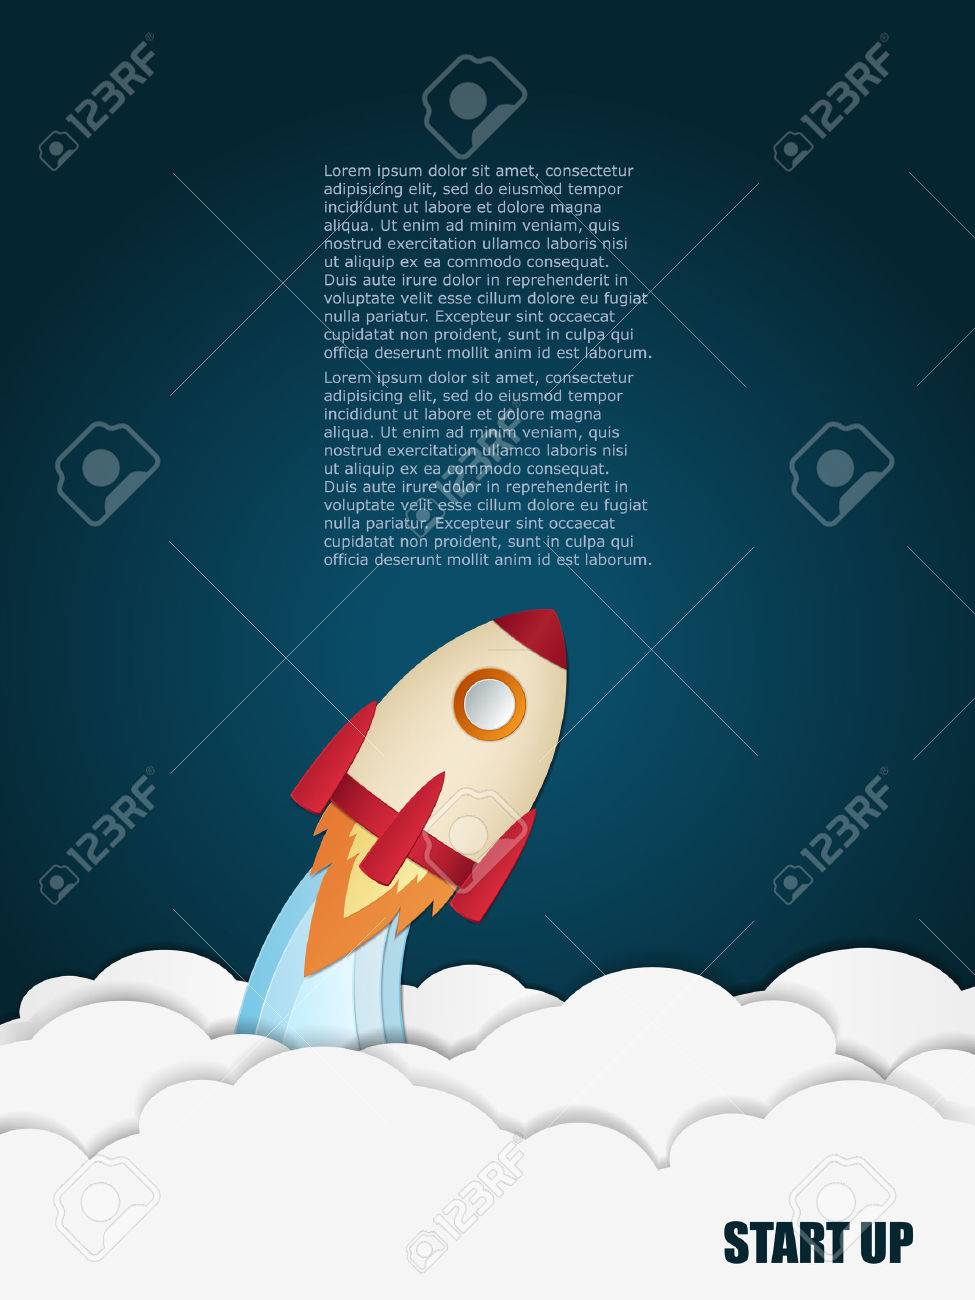 Space rocket launch. Start up concept. Vector illustration. Can be used for presentation, web page, booklet, etc. - 40163275